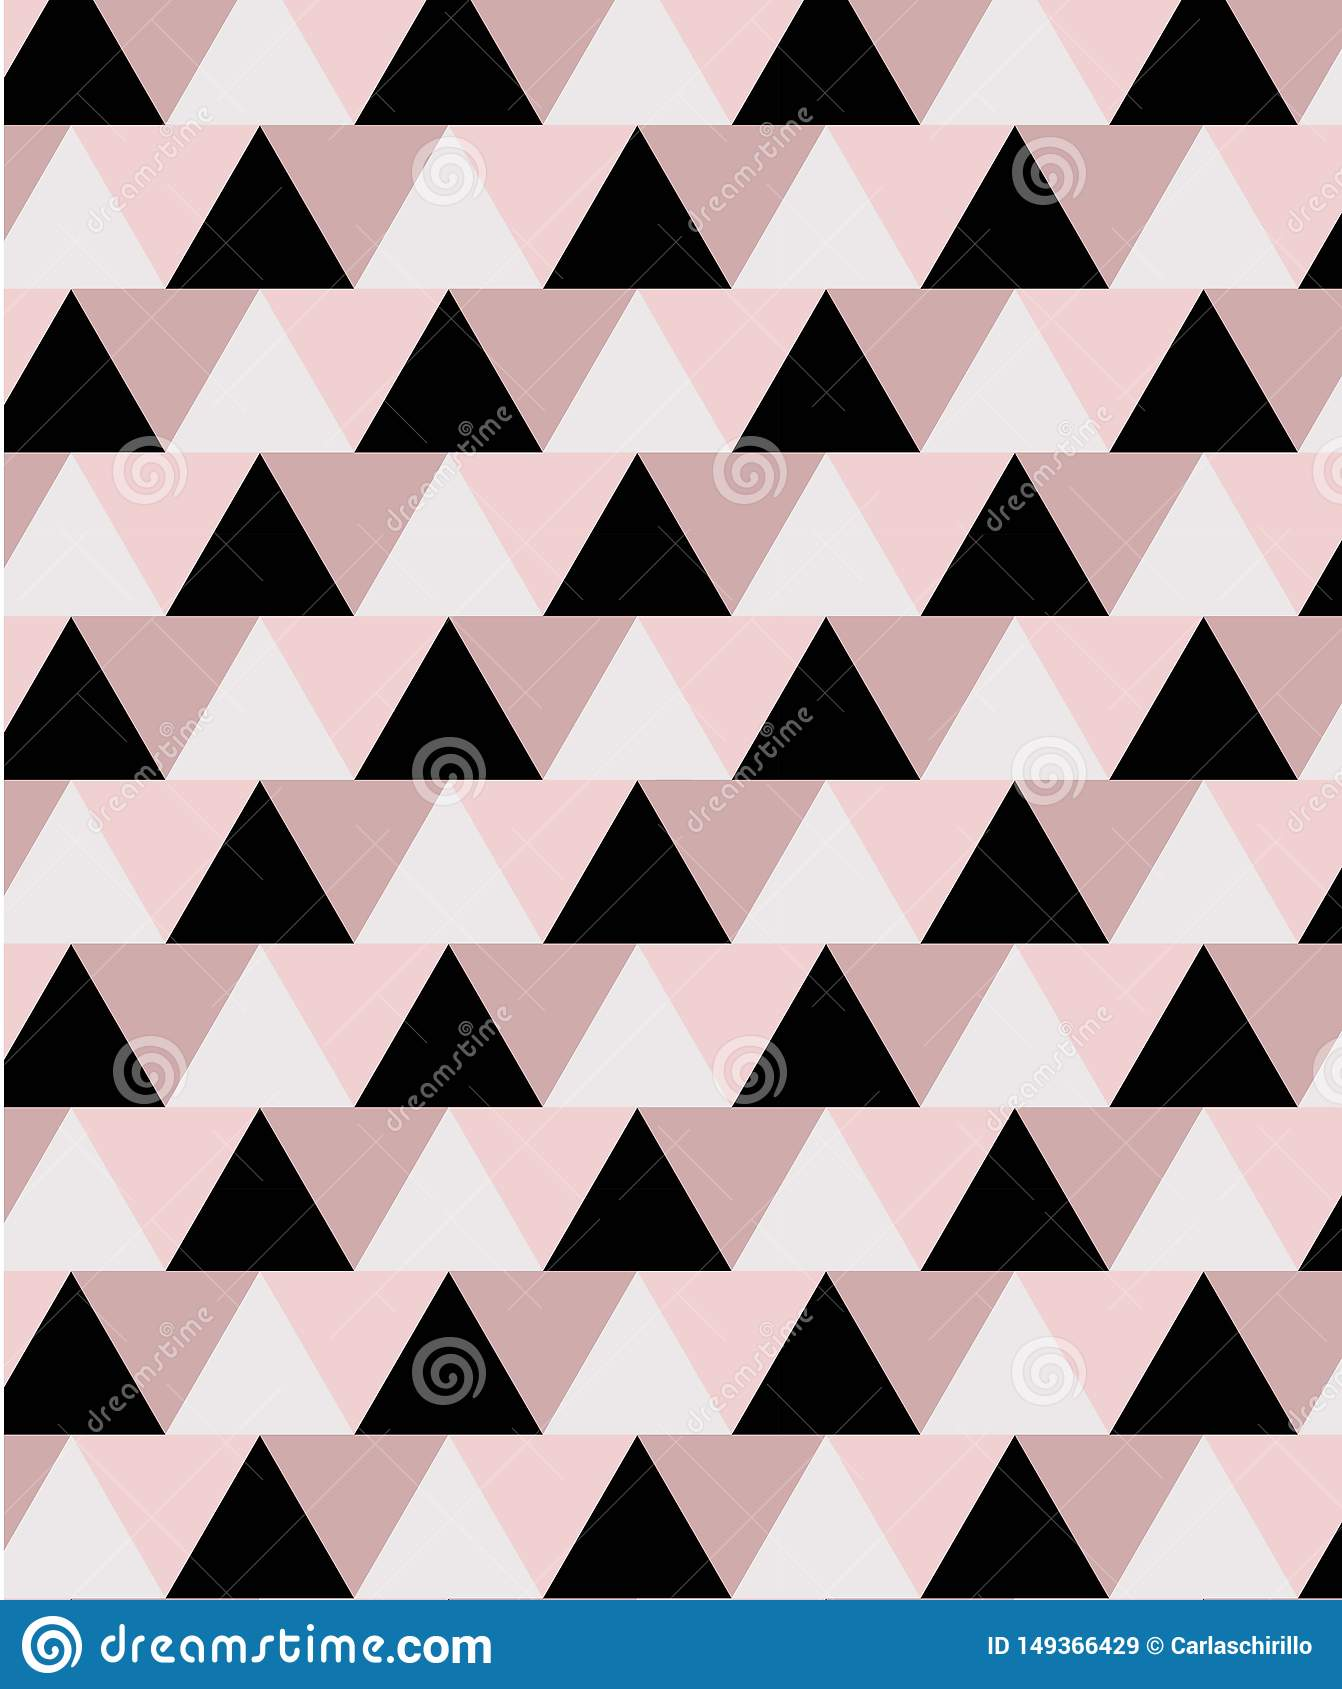 Geometric minimal seamless pattern in pink and black tones